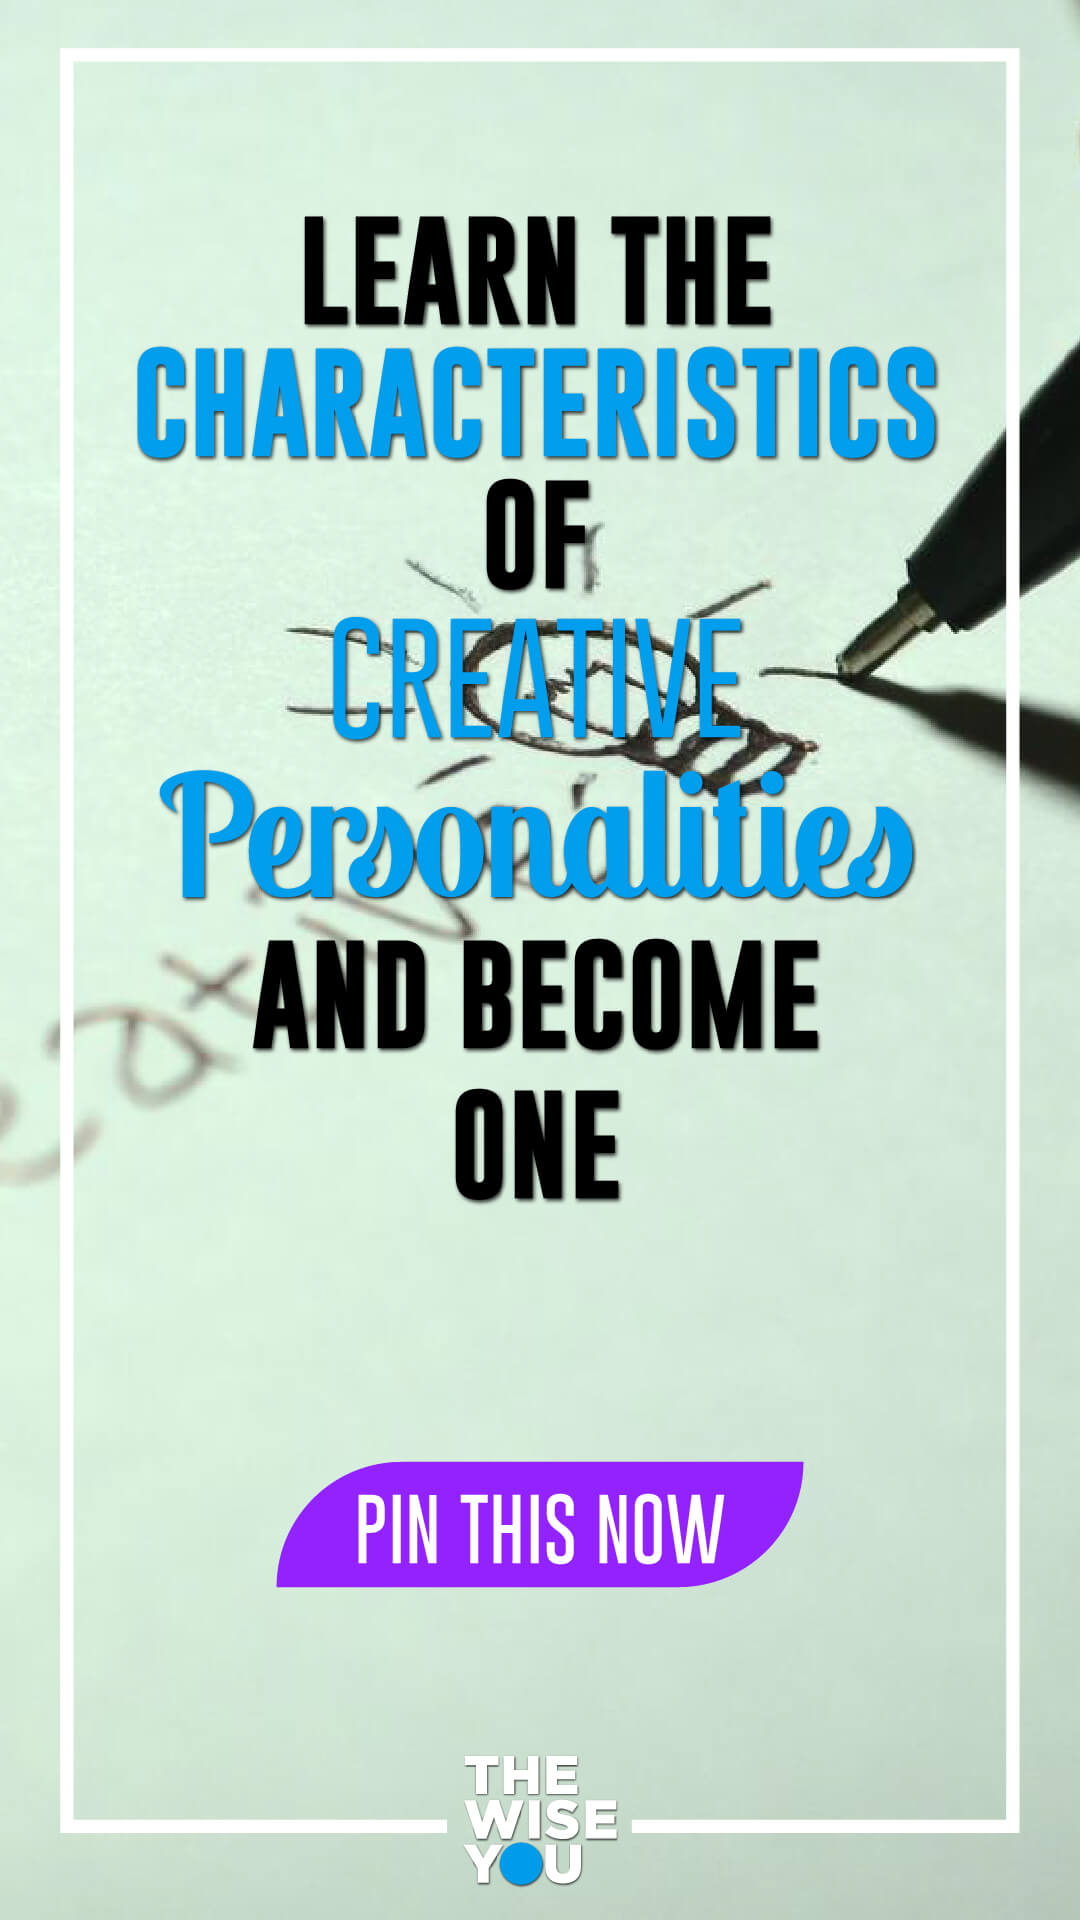 Learn the Characteristics of Creative Personalities and Become One